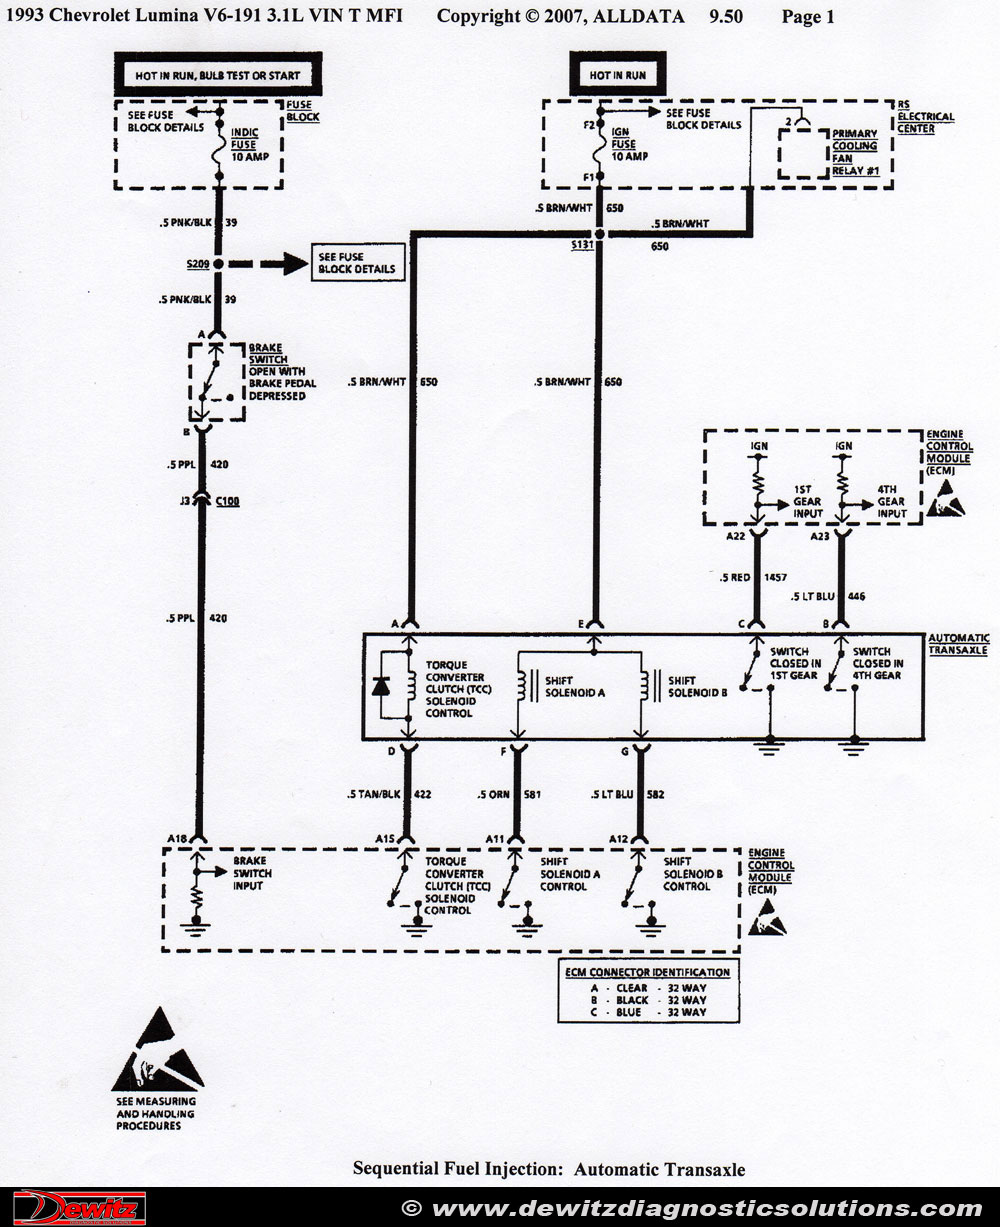 1994 Chevy Astro Van Fuel Pump Wiring Diagram